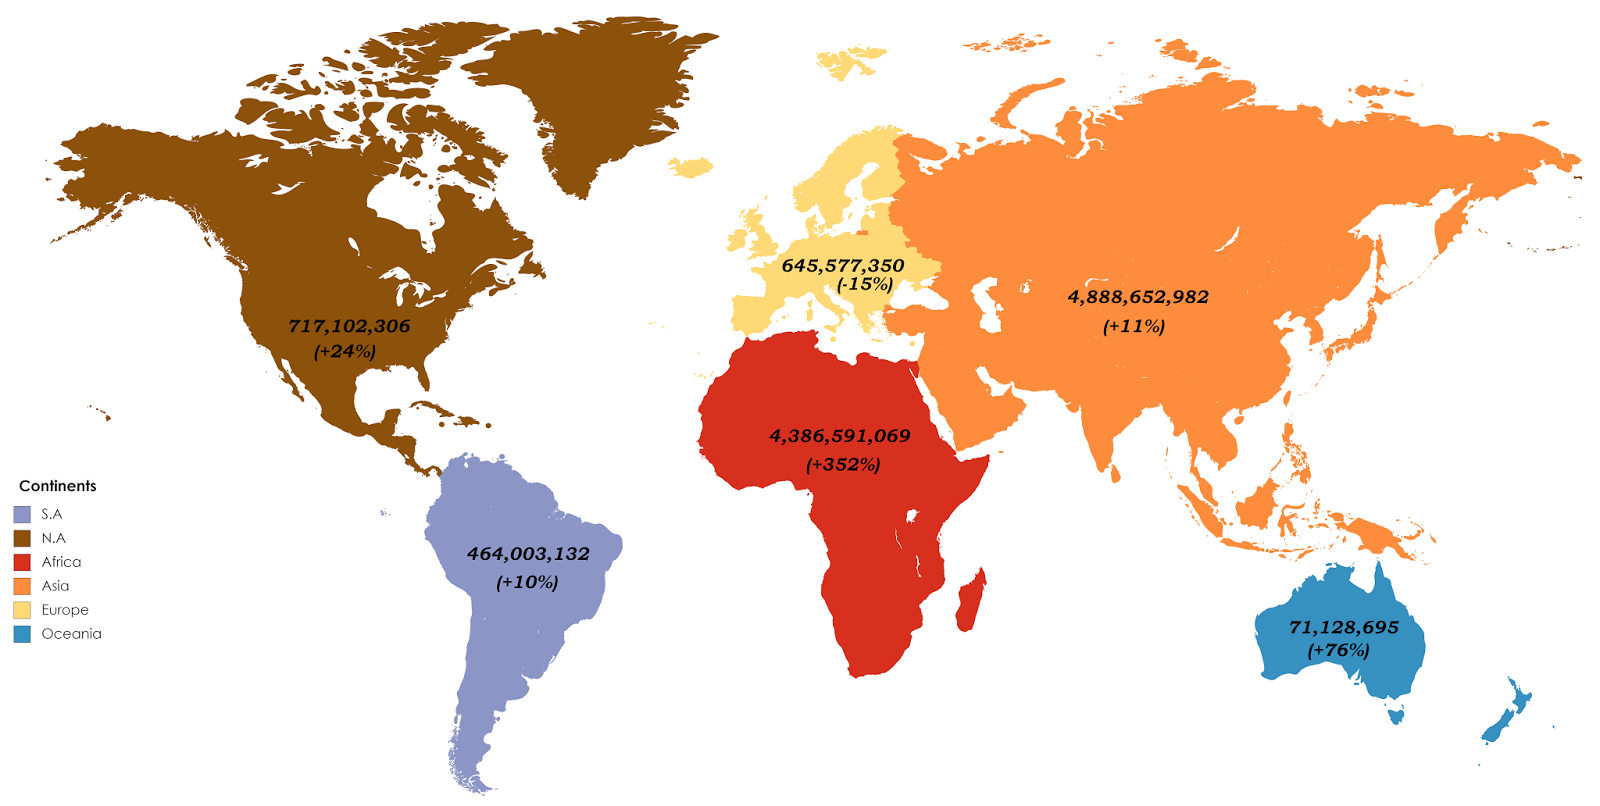 The Population Of Continents By 2100 Vivid Maps